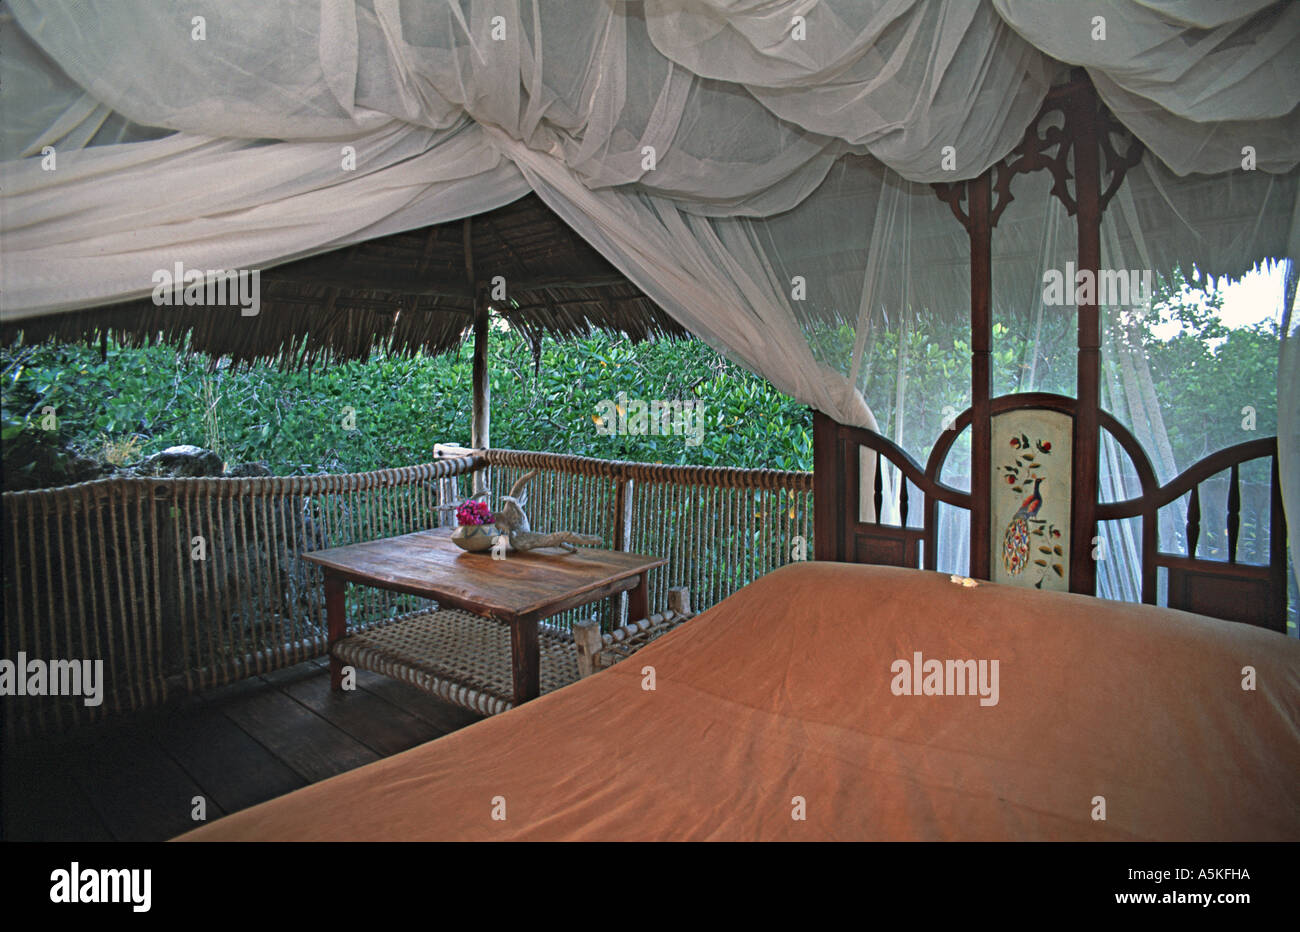 Tasteful but simple interior of one of the luxury treehouses at Chole Mjini Adjacent to Mafia island Tanzania Stock Photo